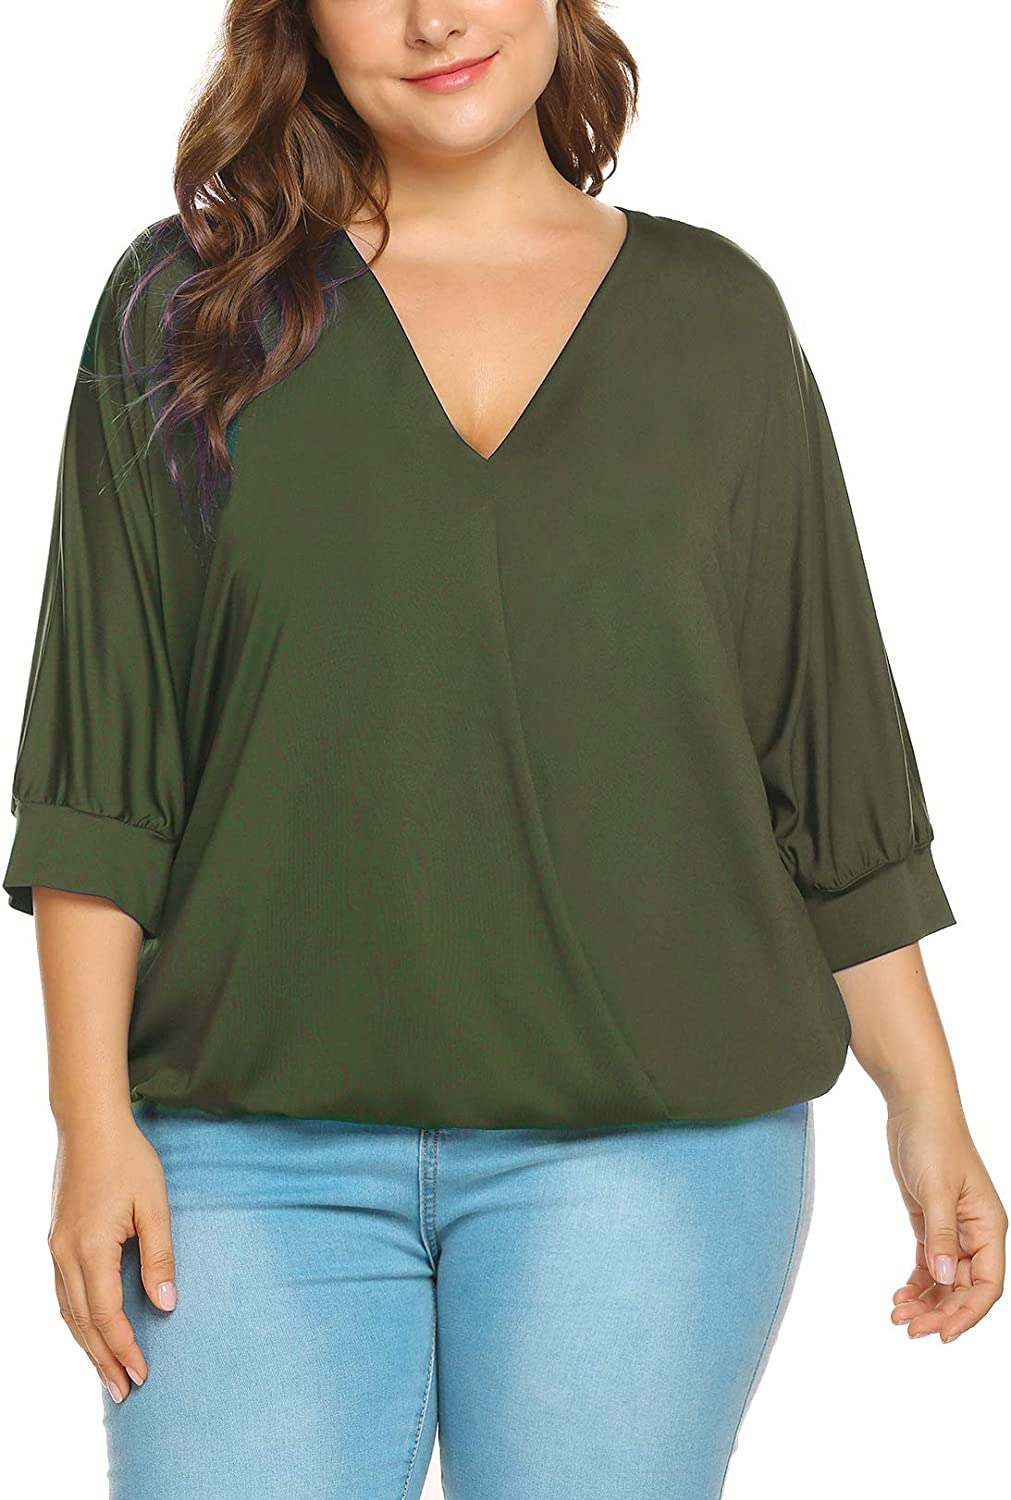 IN'VOLAND Women Plus Size Tops-Wrap Blouse V Neck Front Drape Tops Casual Loose Shirt (16W-24W)